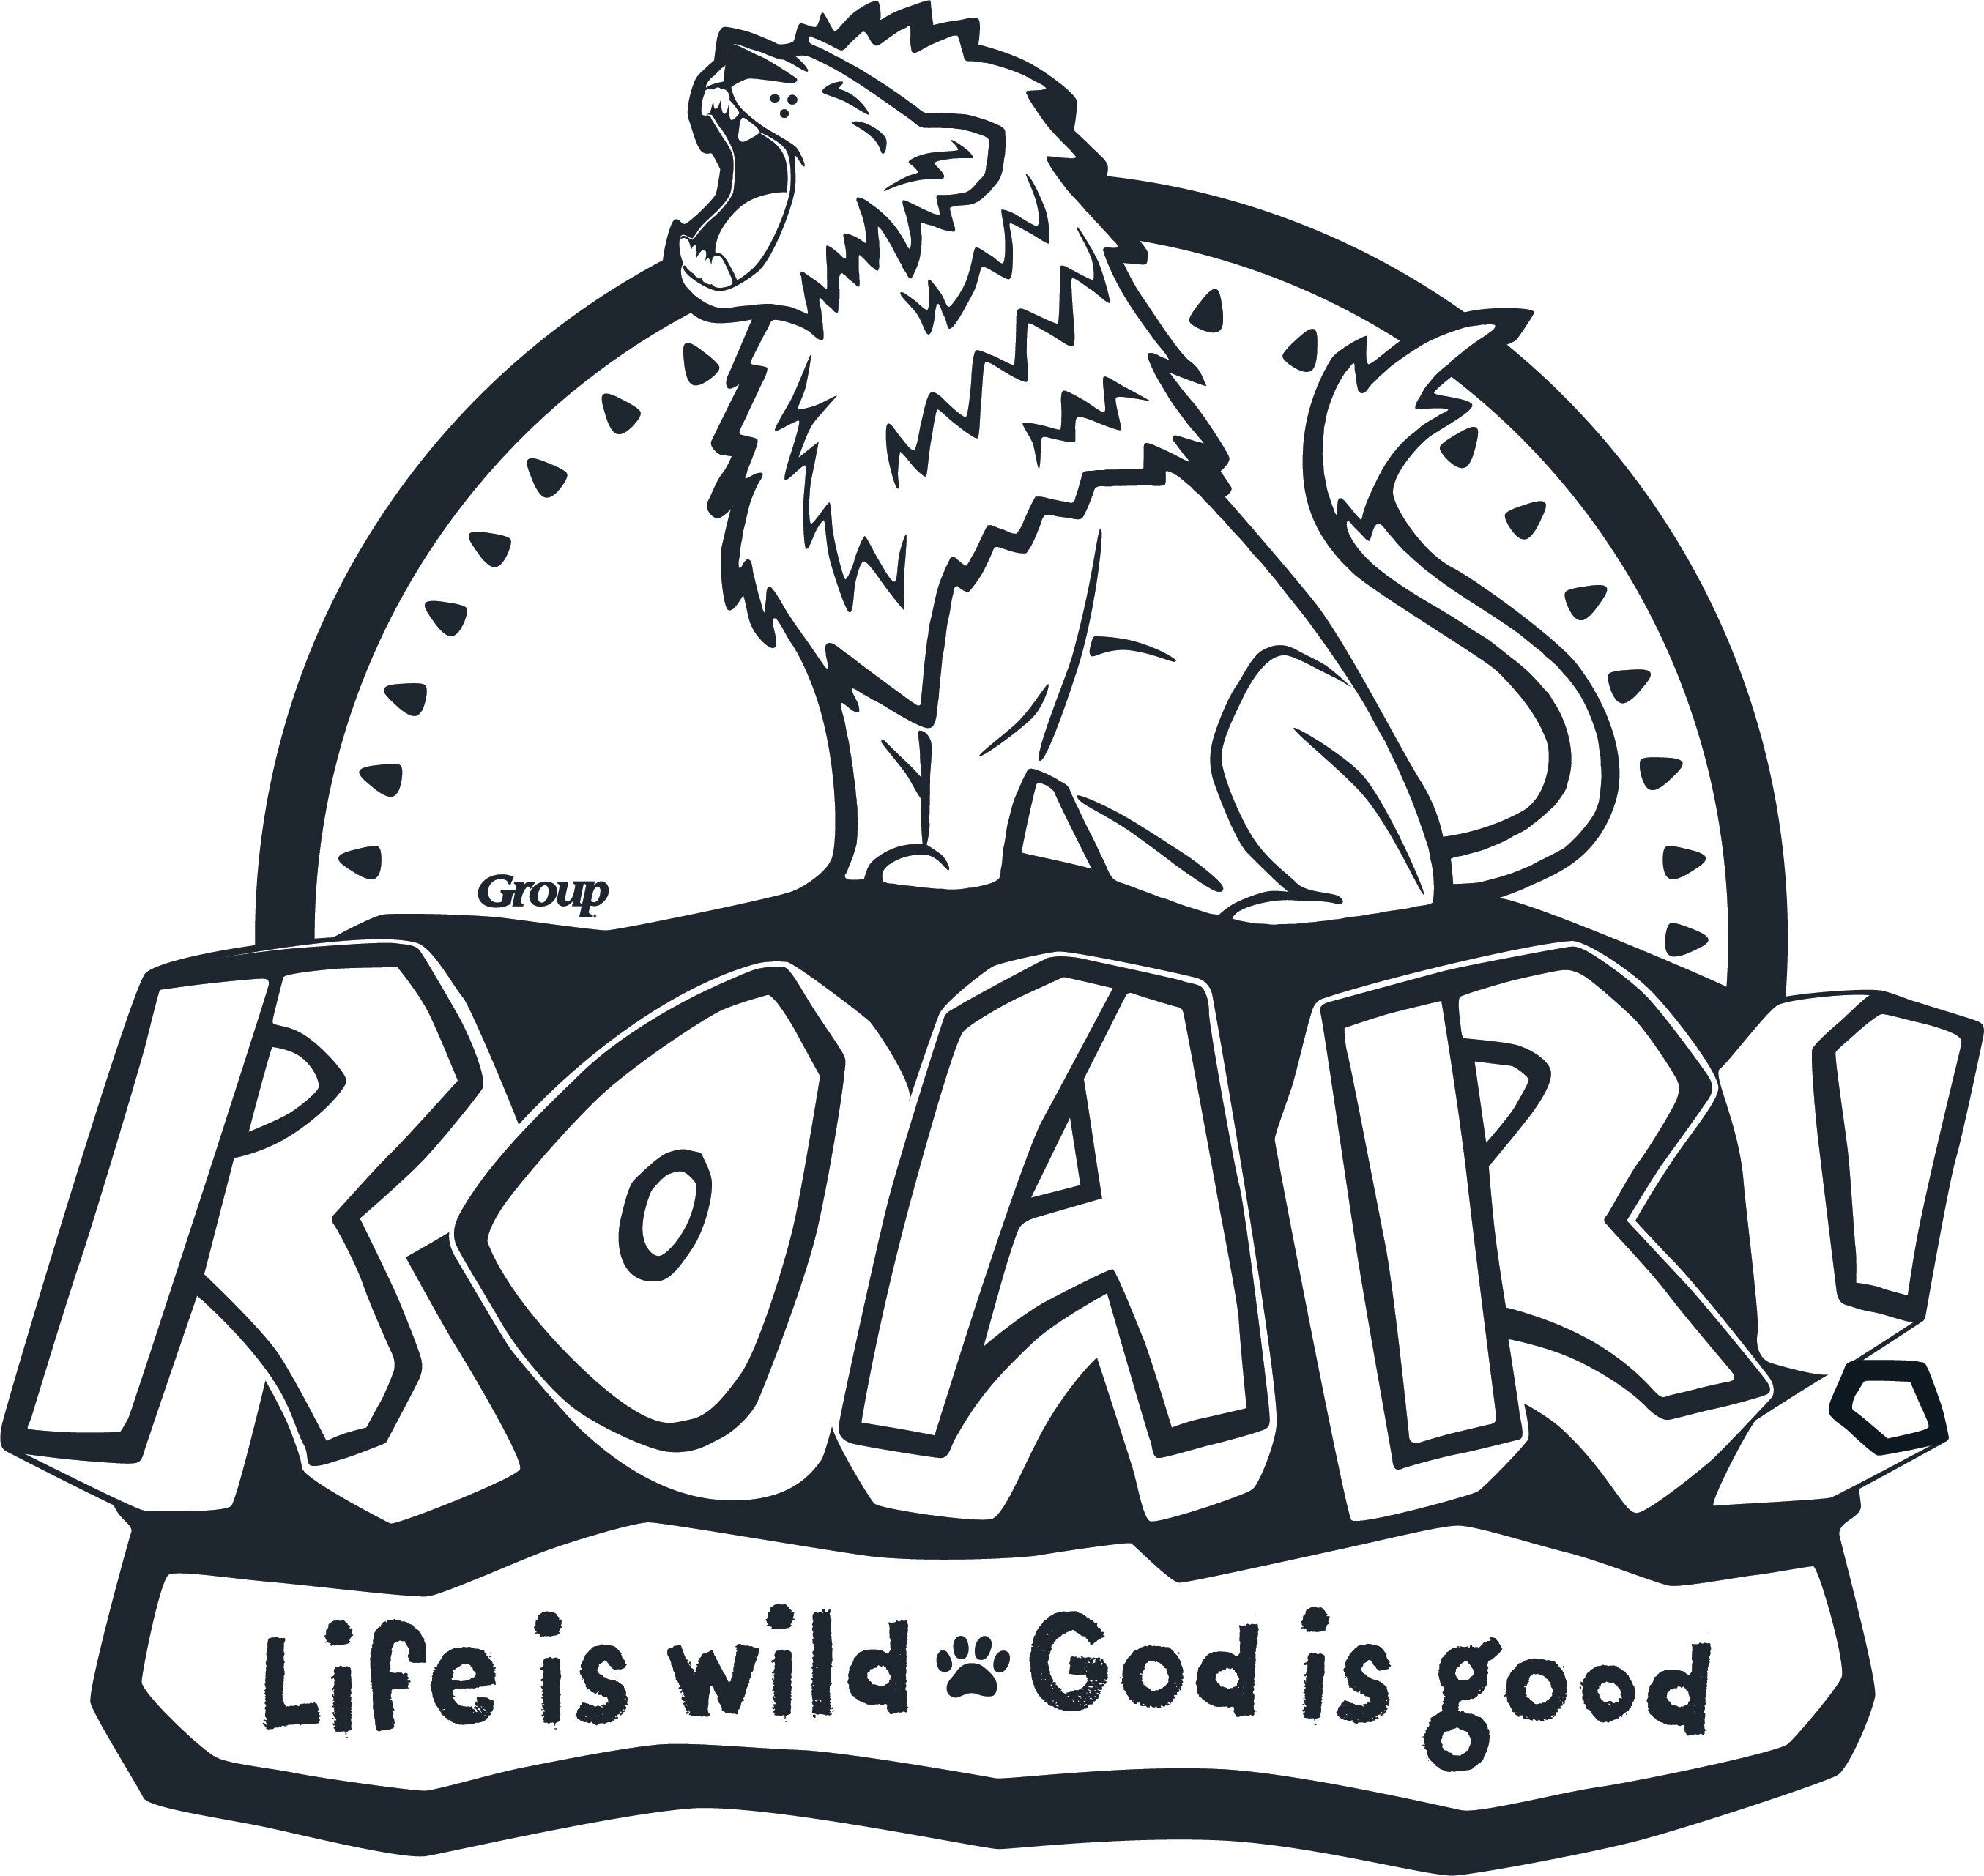 Vbs 2019 roar clipart svg black and white stock VBS-Roar 2019 svg black and white stock